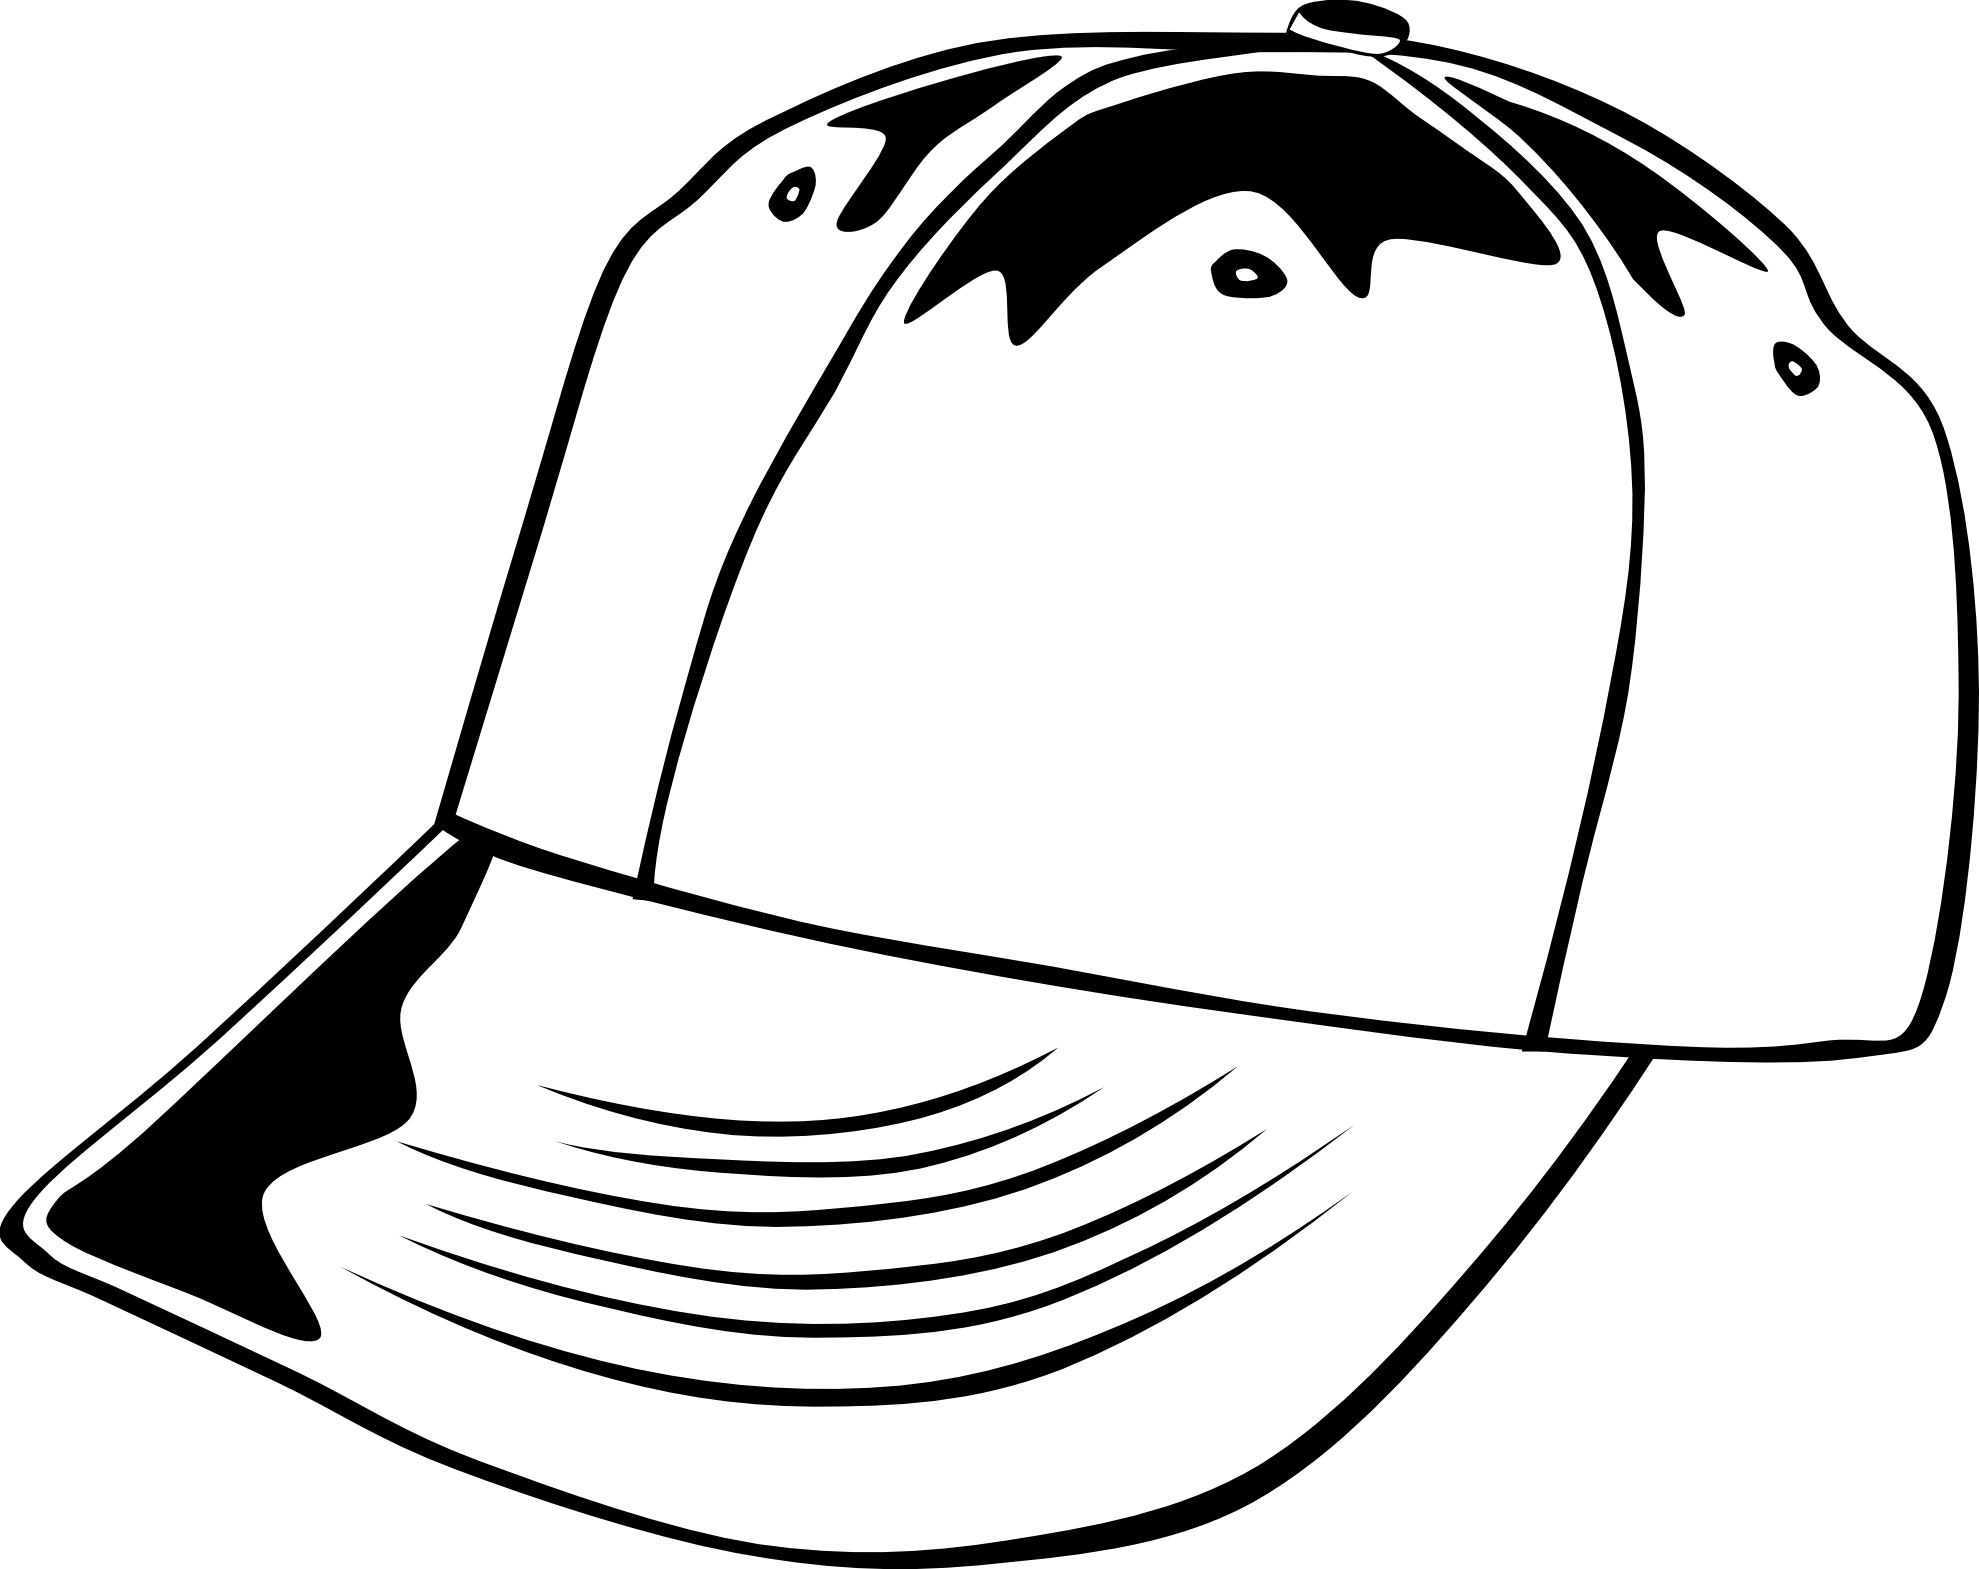 Newspaper clipart hat. Black and white cap